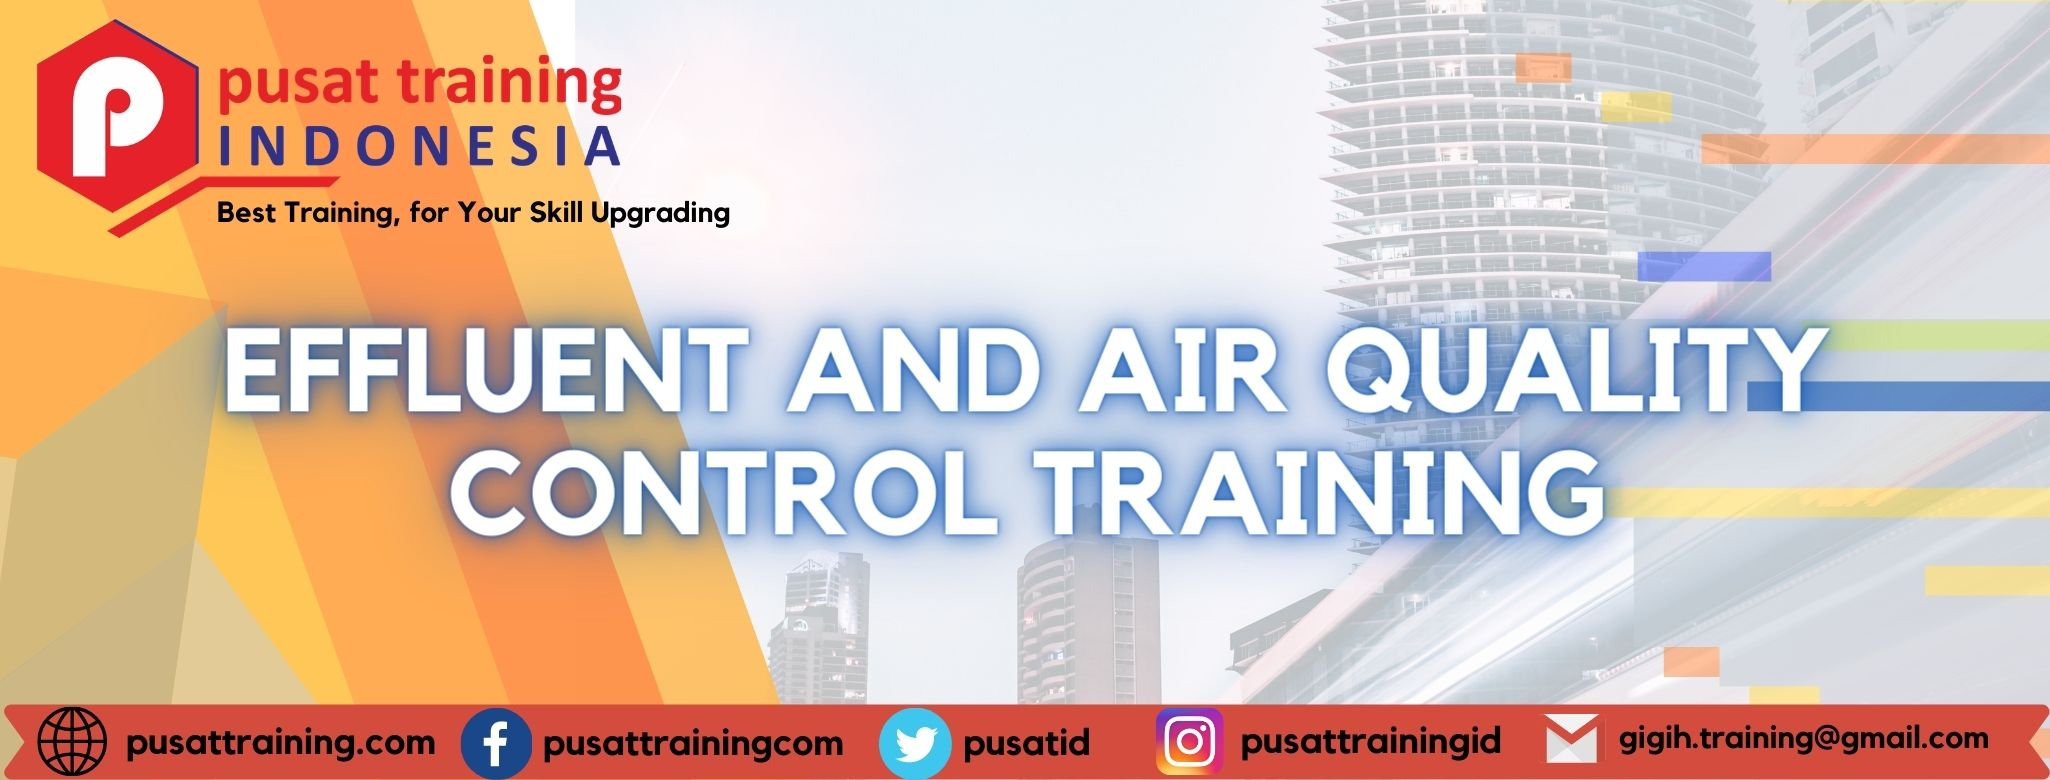 effluent-and-air-quality-control-training